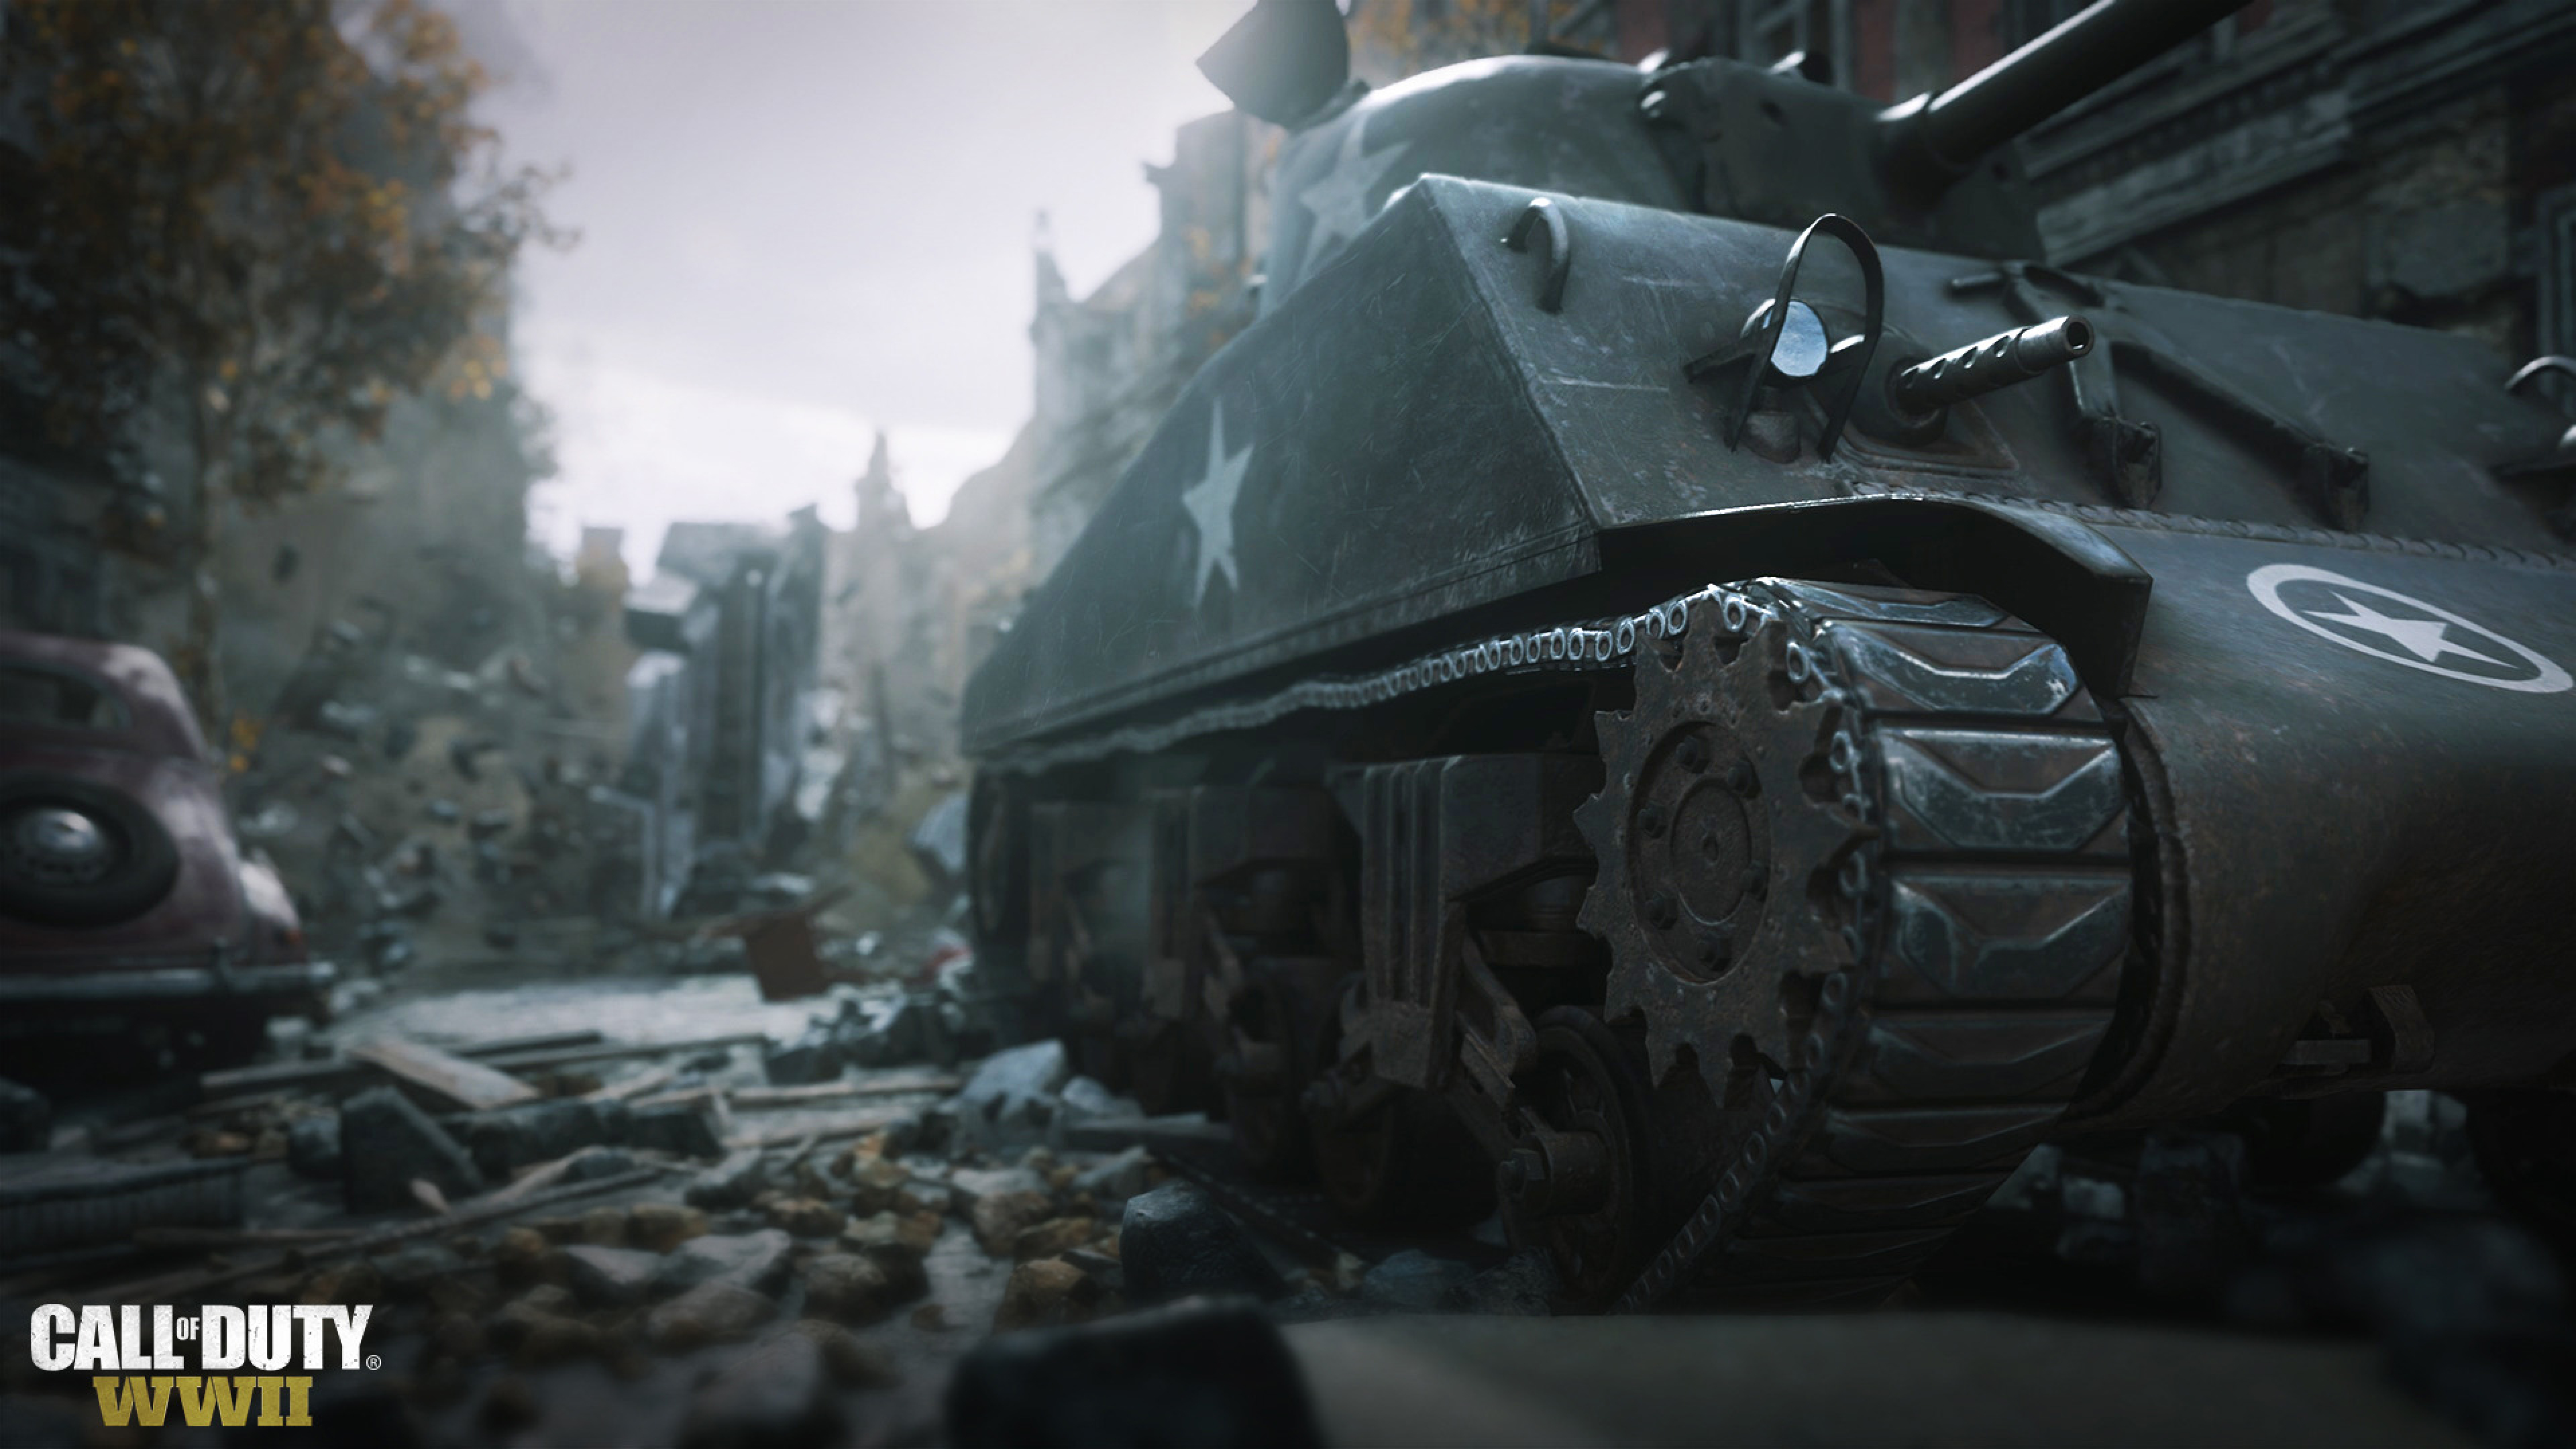 Call of duty ww2 tank full hd wallpaper - Cod ww2 4k pc ...